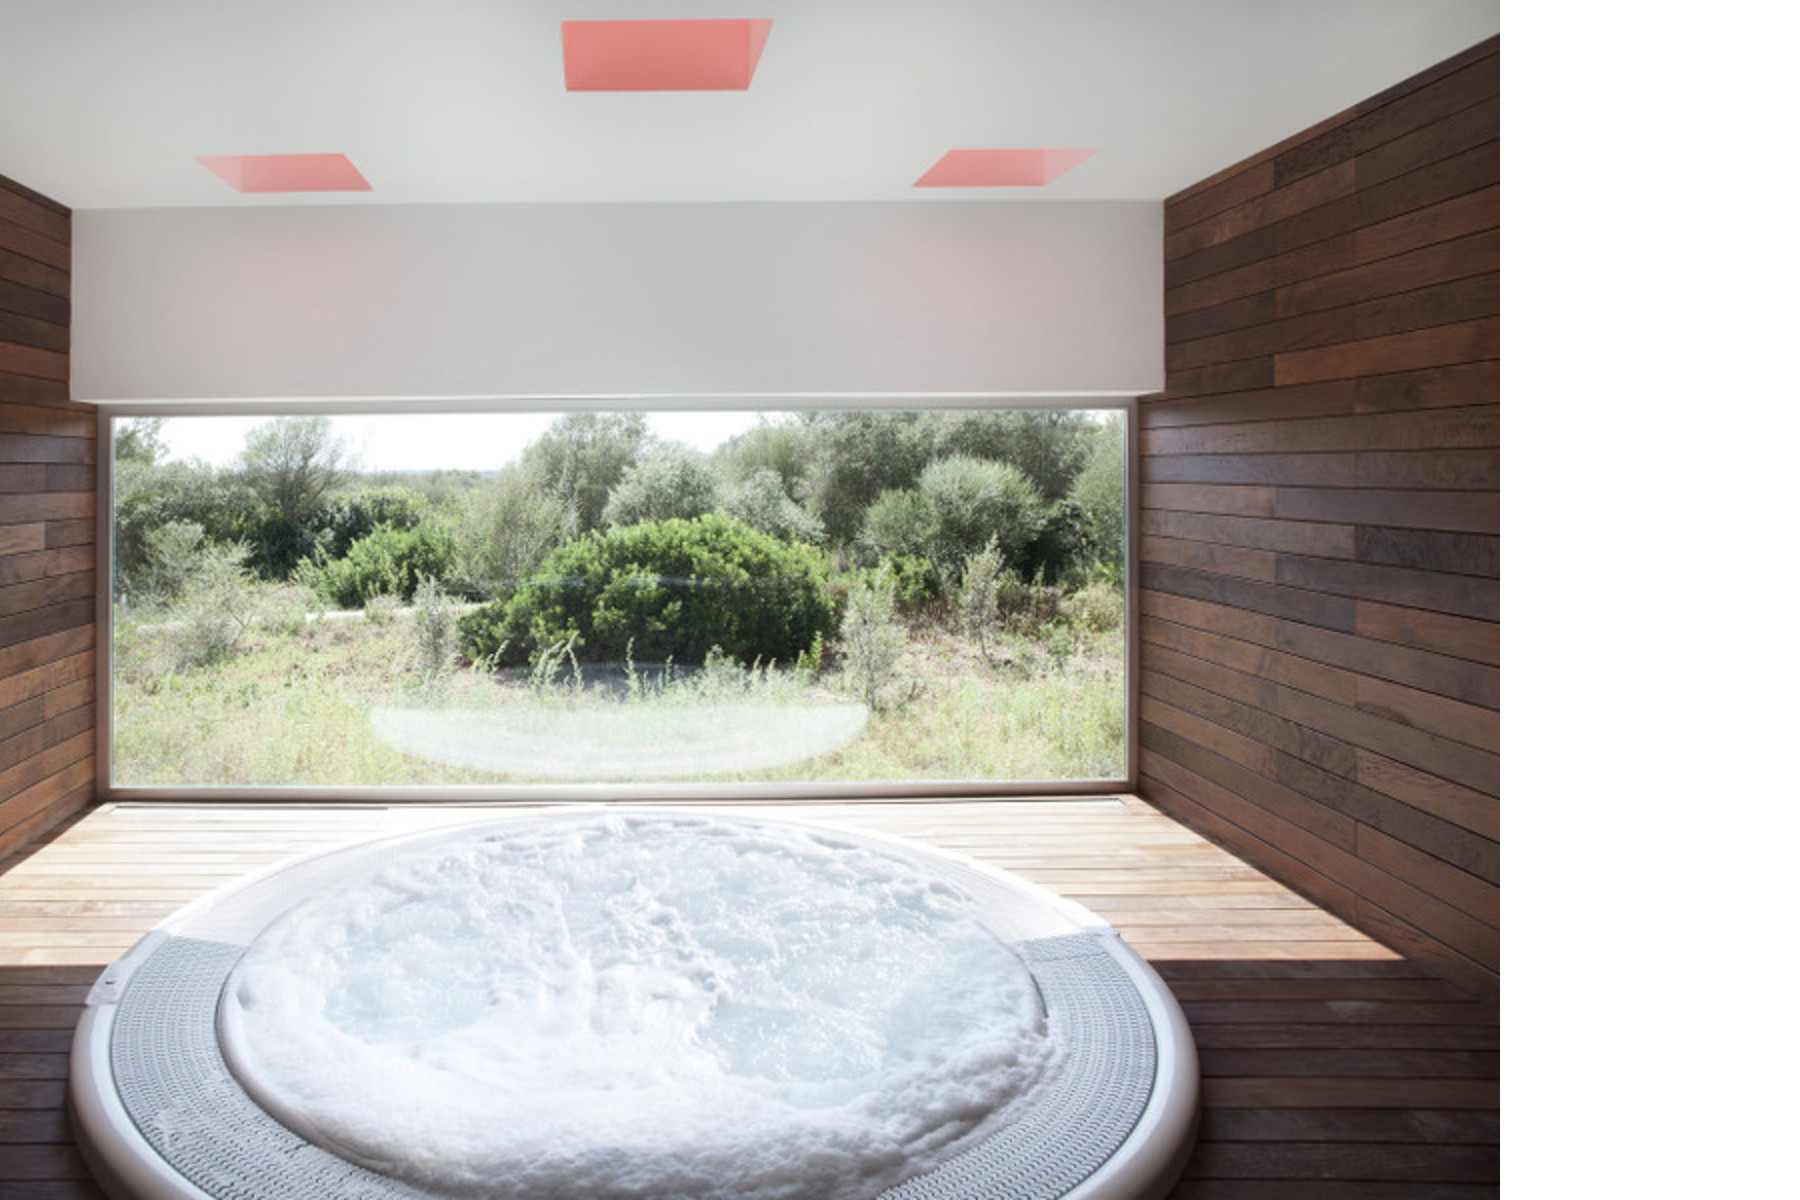 Spa By A2arqiutectos In Majorca Wins The 41st Annual Interior Design  Competition